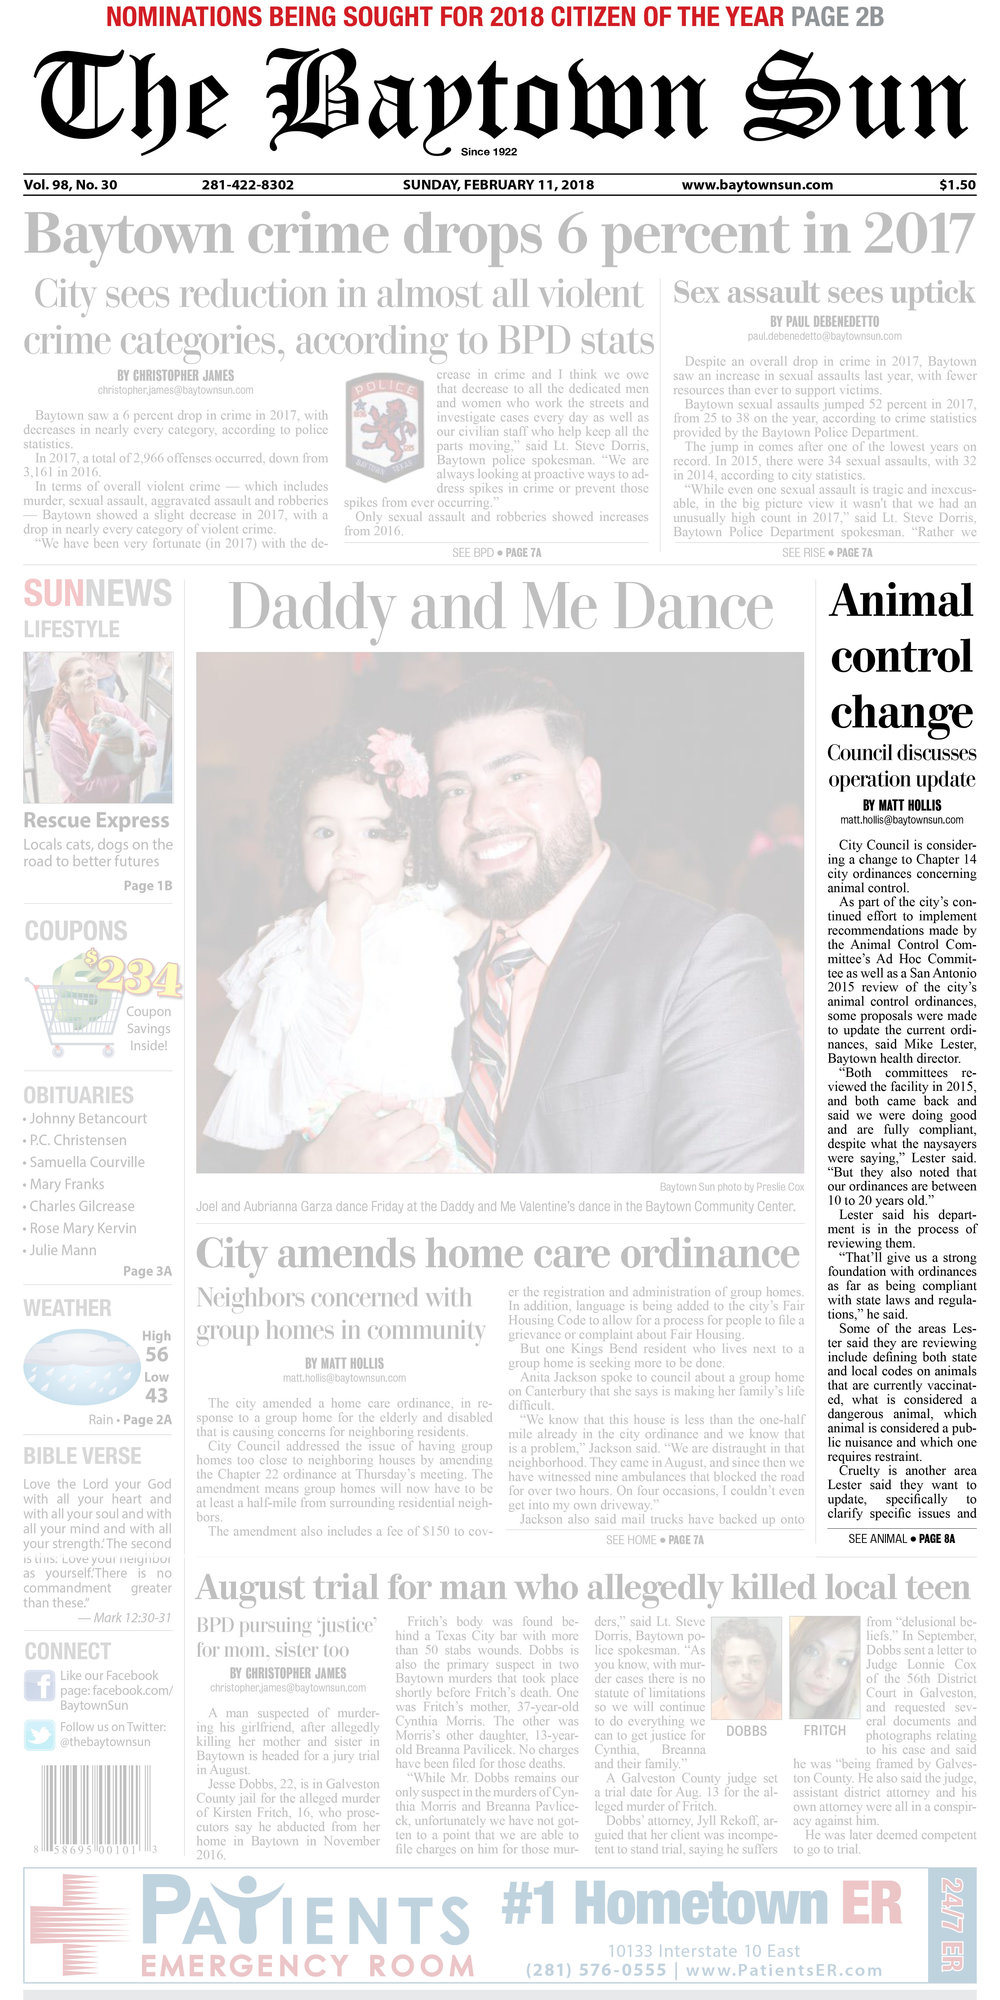 02.11.18 - Baytown Sun - Animal Ordinances.jpg